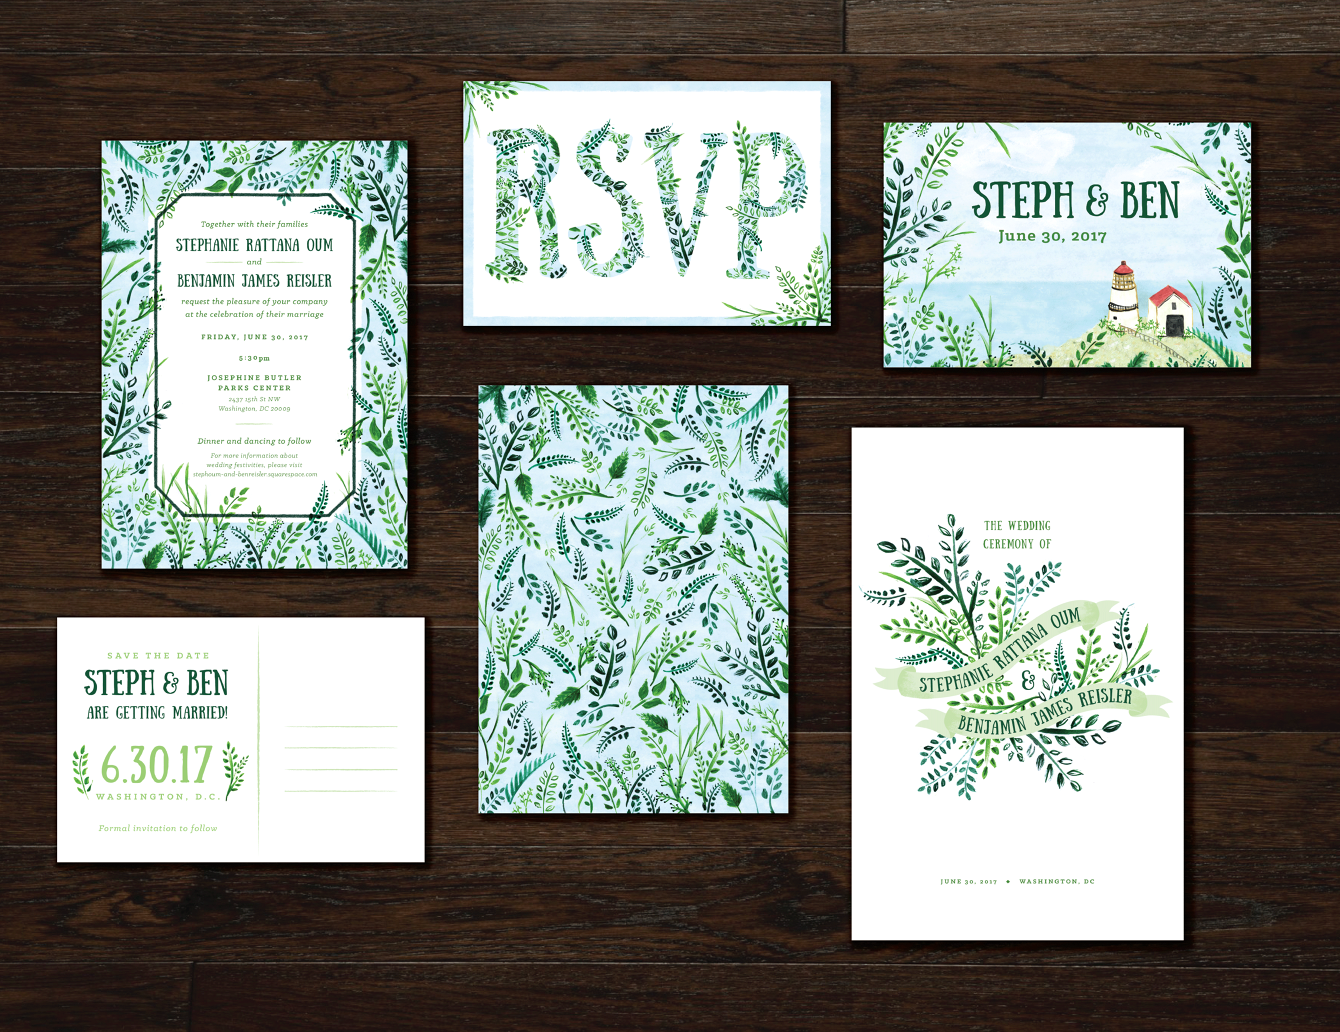 Steph and Ben Wedding Suite - Lauren Monaco Design and Illustration